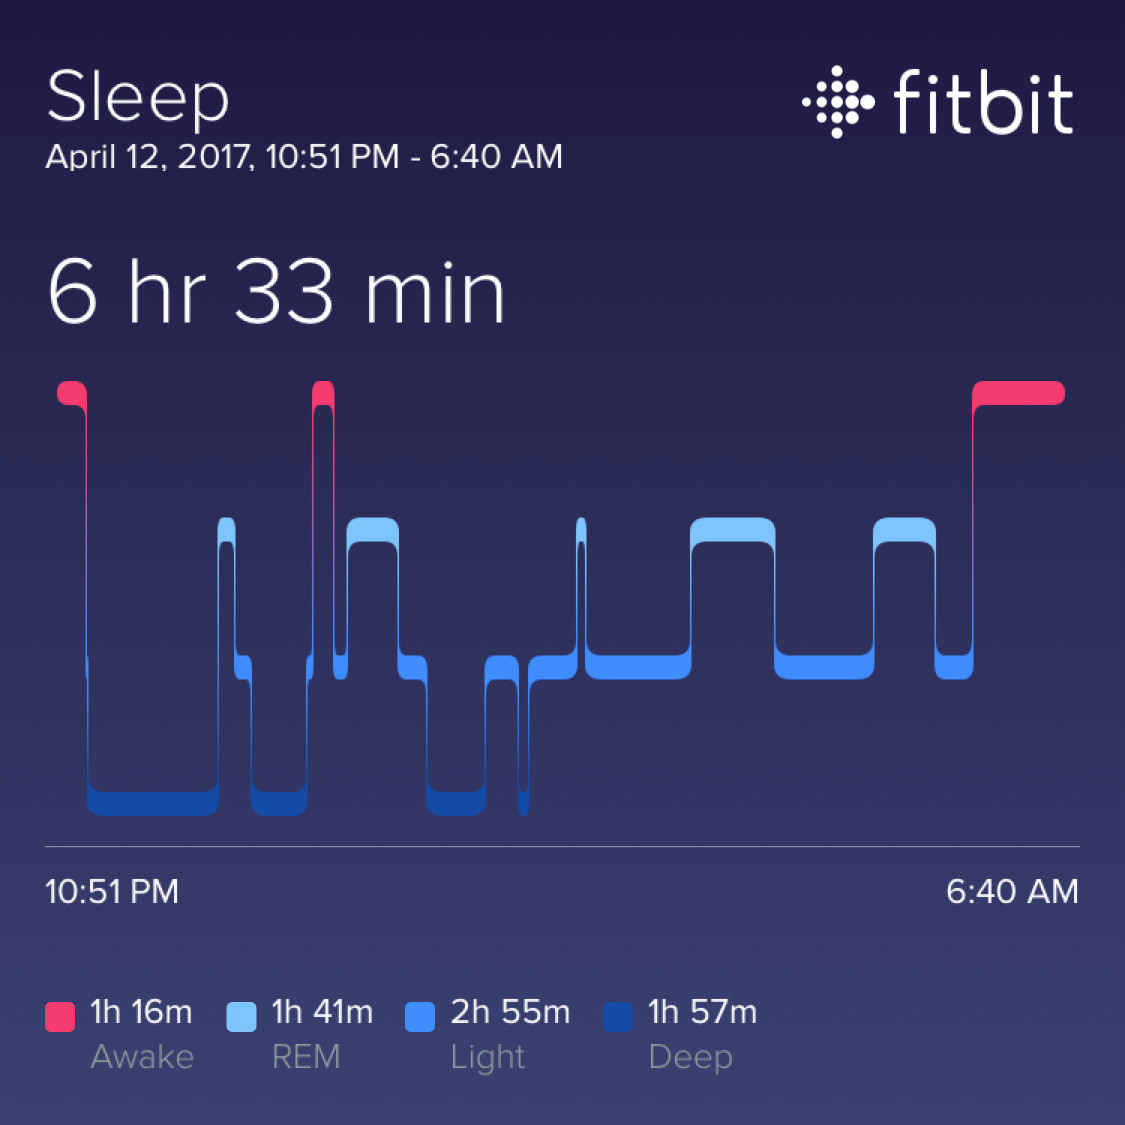 Will Fitbit's sleep apnea tracking actually work? - The Verge